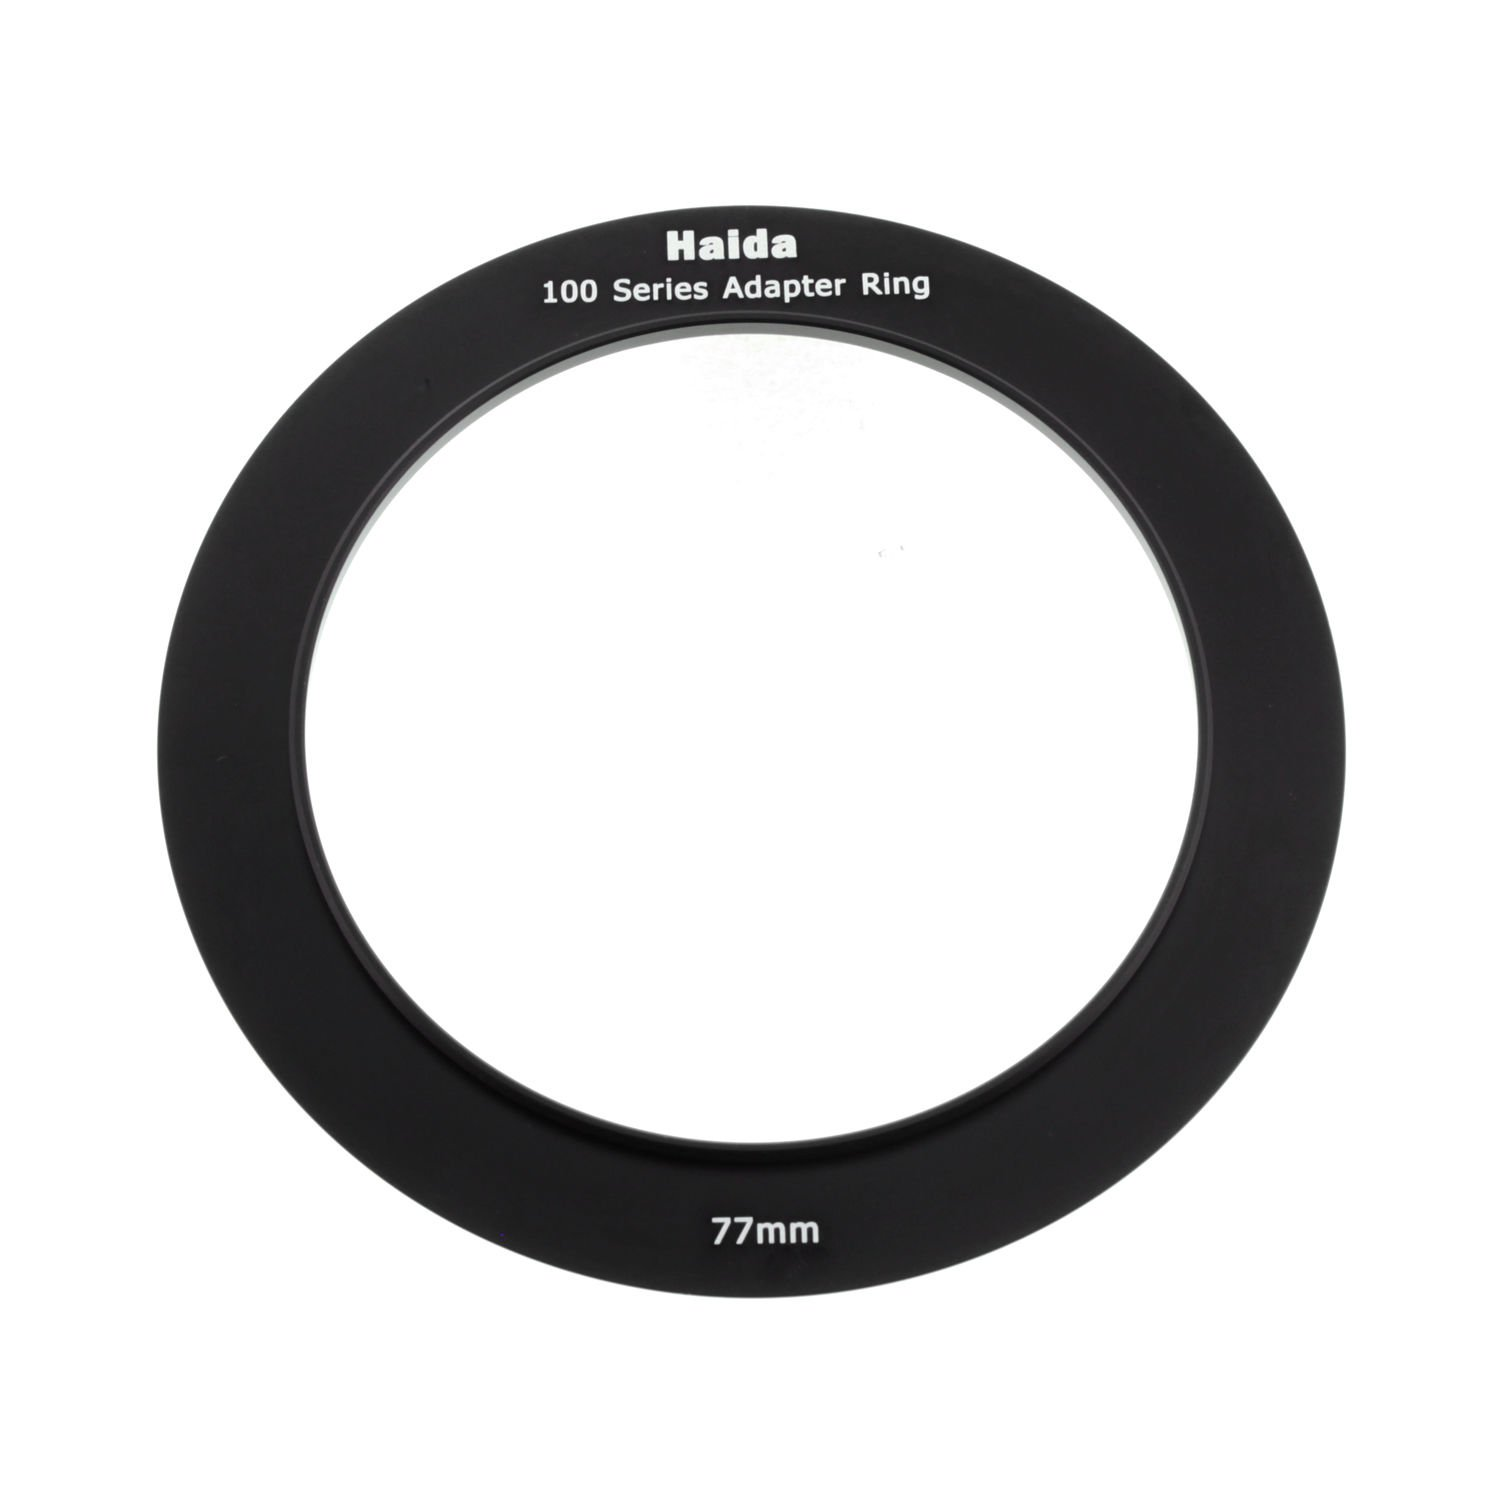 Haida 77mm Metal Adapter ring for 100 Series Filter Holder fits 77 Lens / Lenses